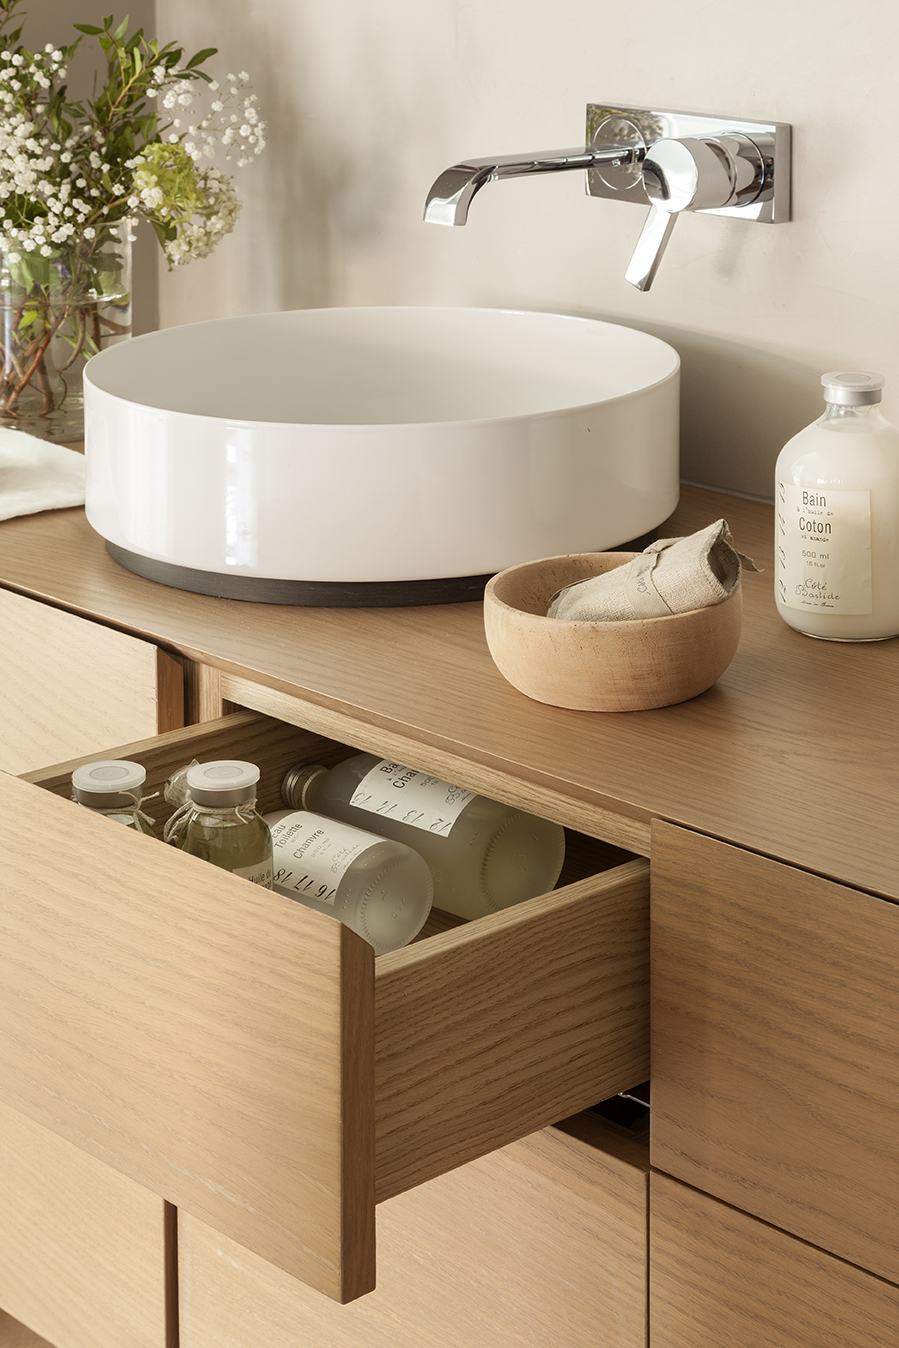 Ideas para que tu ba o sea m s confortable y acogedor - Mueble con lavabo ...